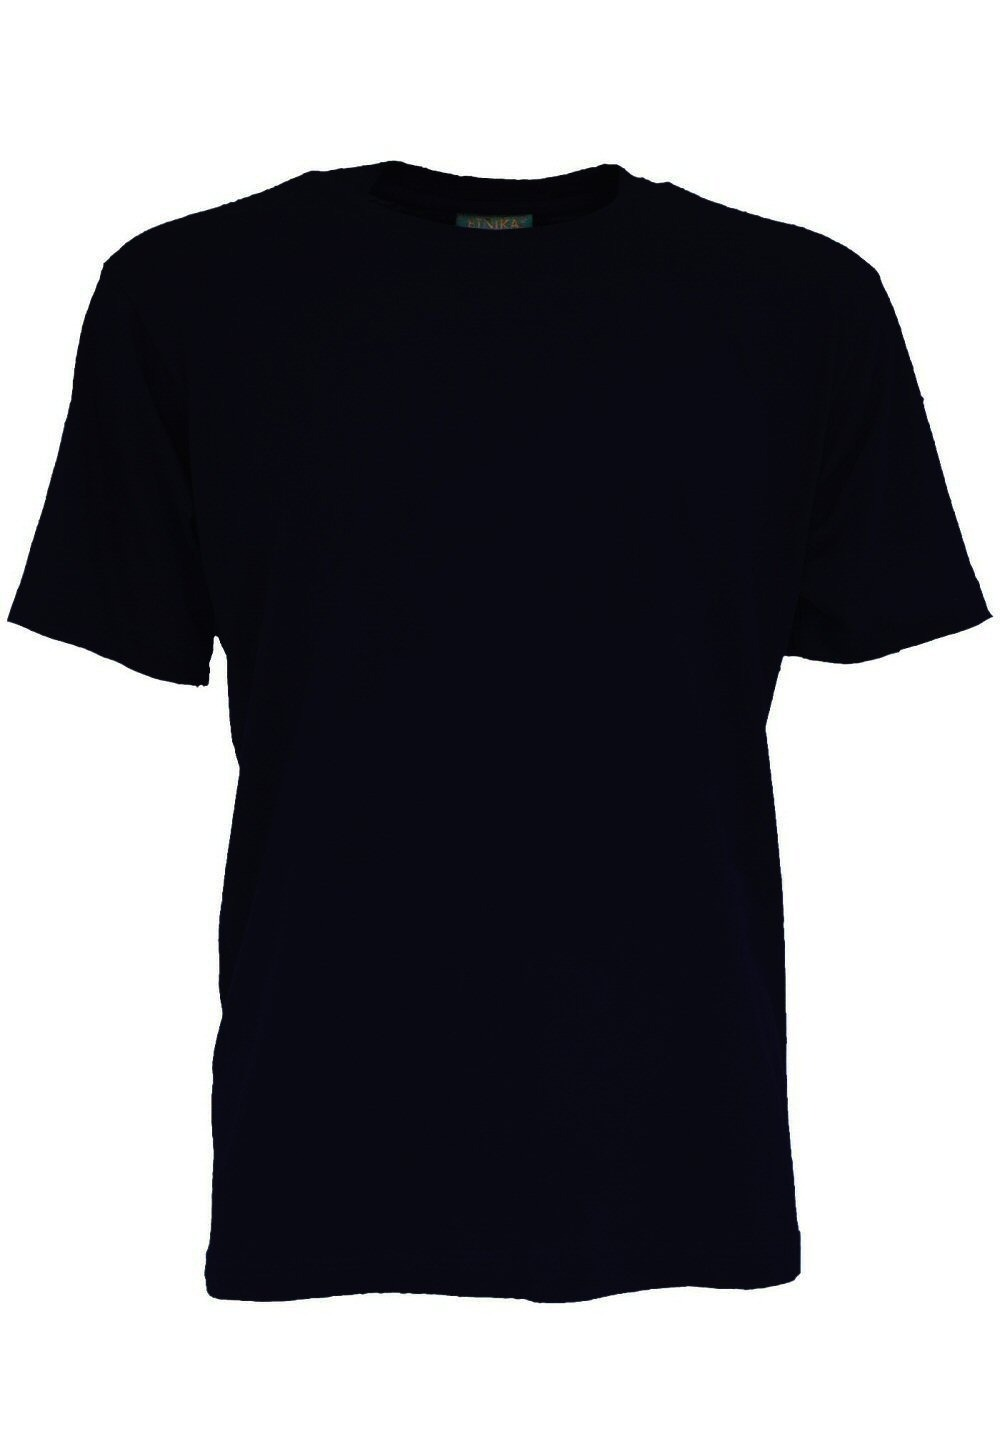 MEN'S T-SHIRTS AB-NPM13 - Oriente Import S.r.l.